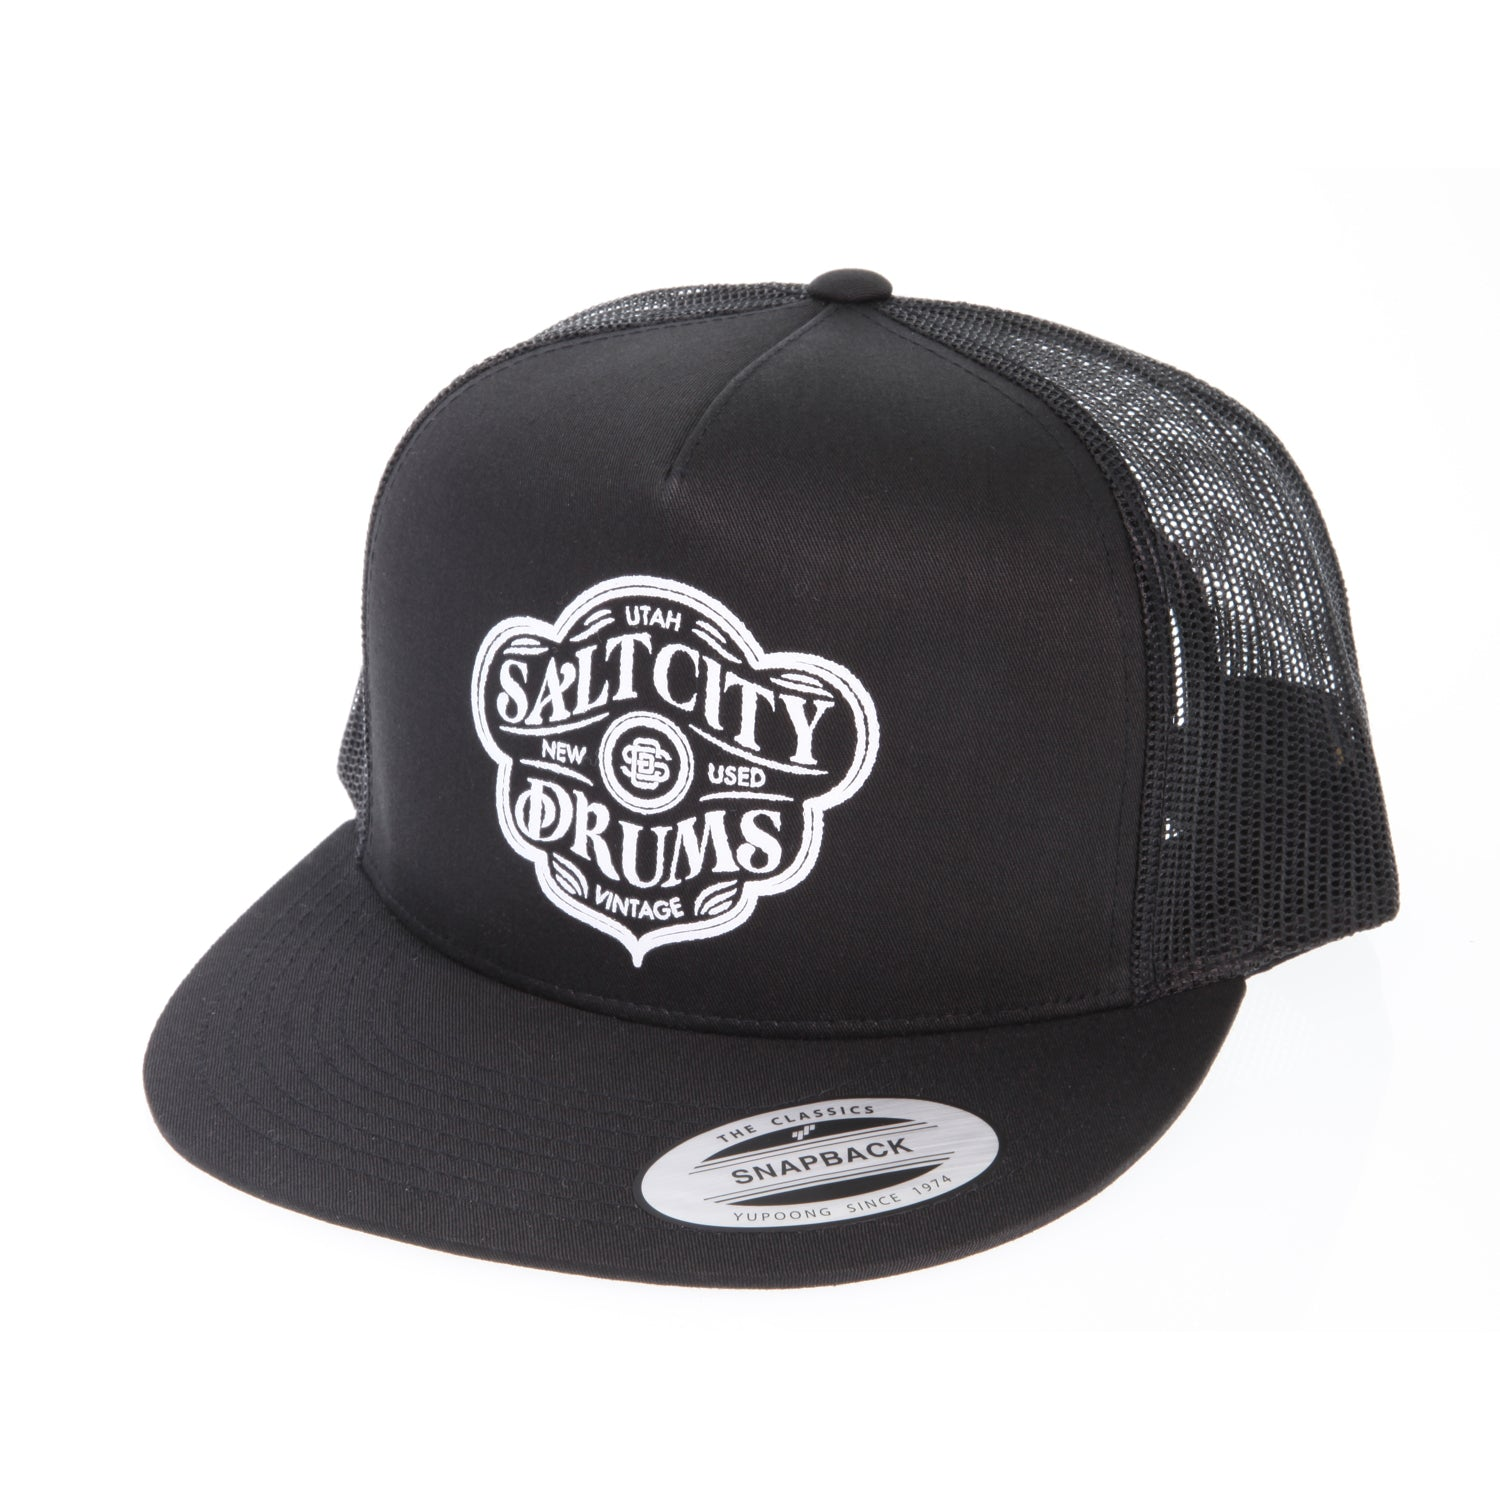 Salt City Drums SCD50 Classic Snapback Trucker Hat